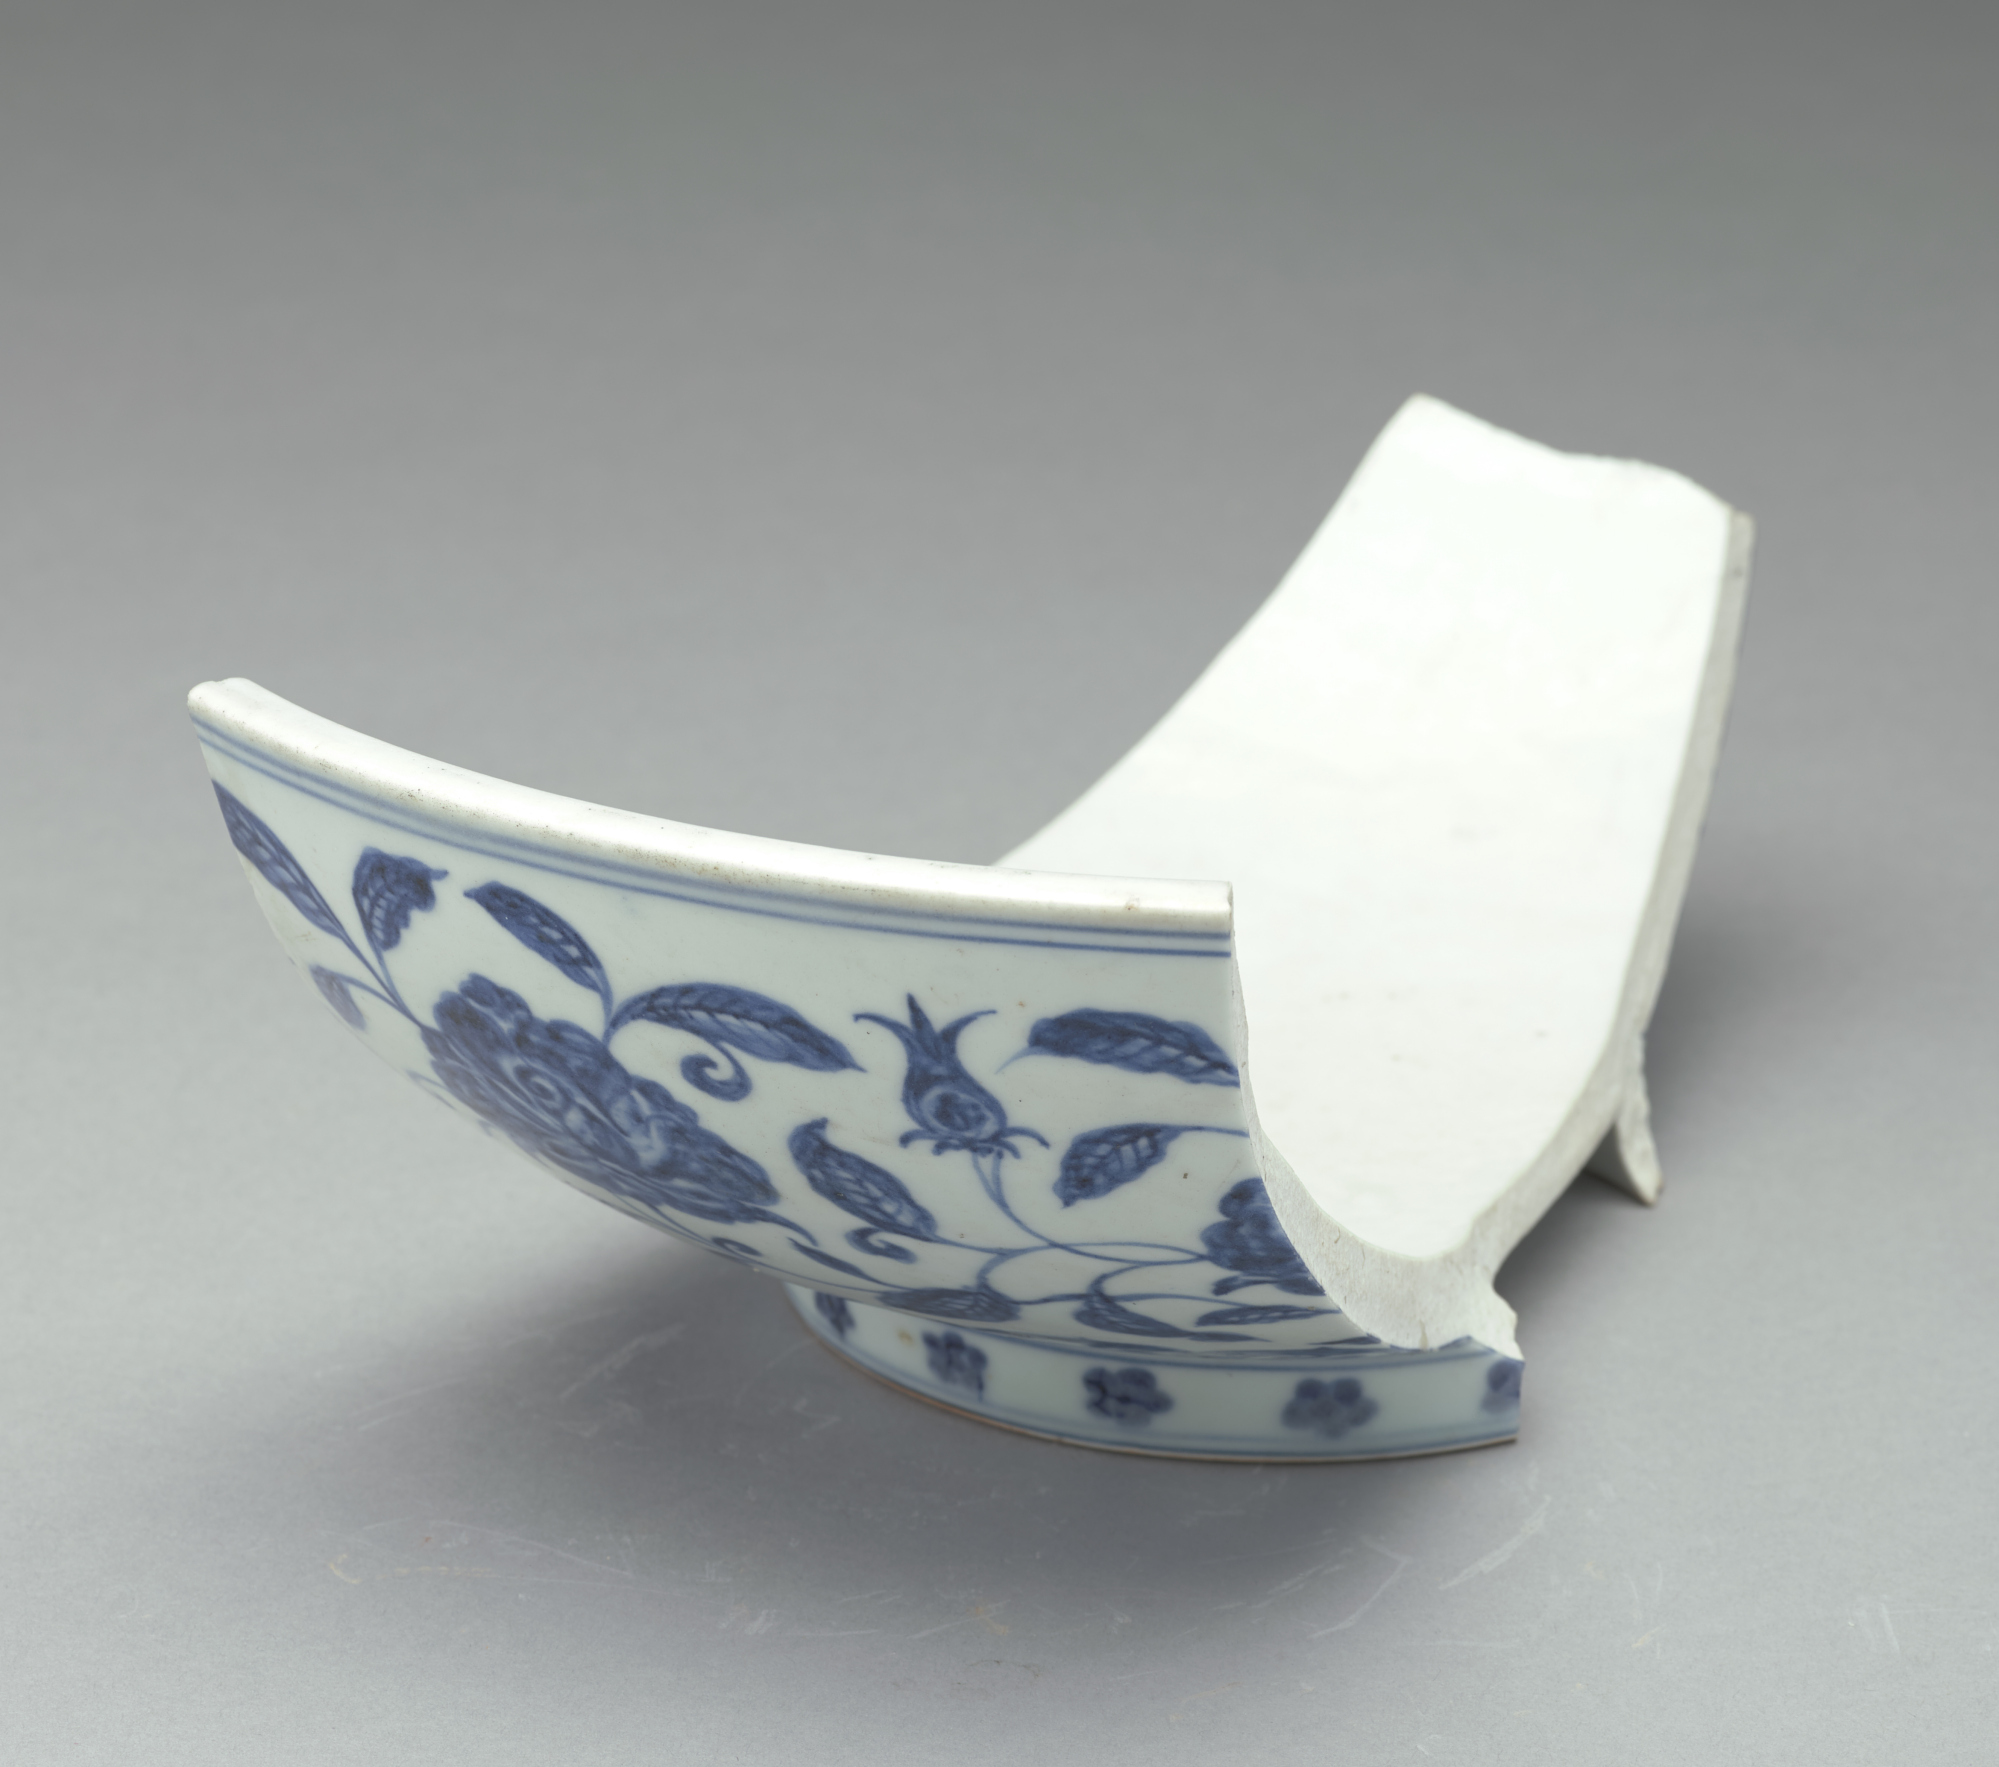 1 of 2 fragments of a blue-and-white bowl formerly in Mr. Johnson's collection (Goes with FSC-P-241)